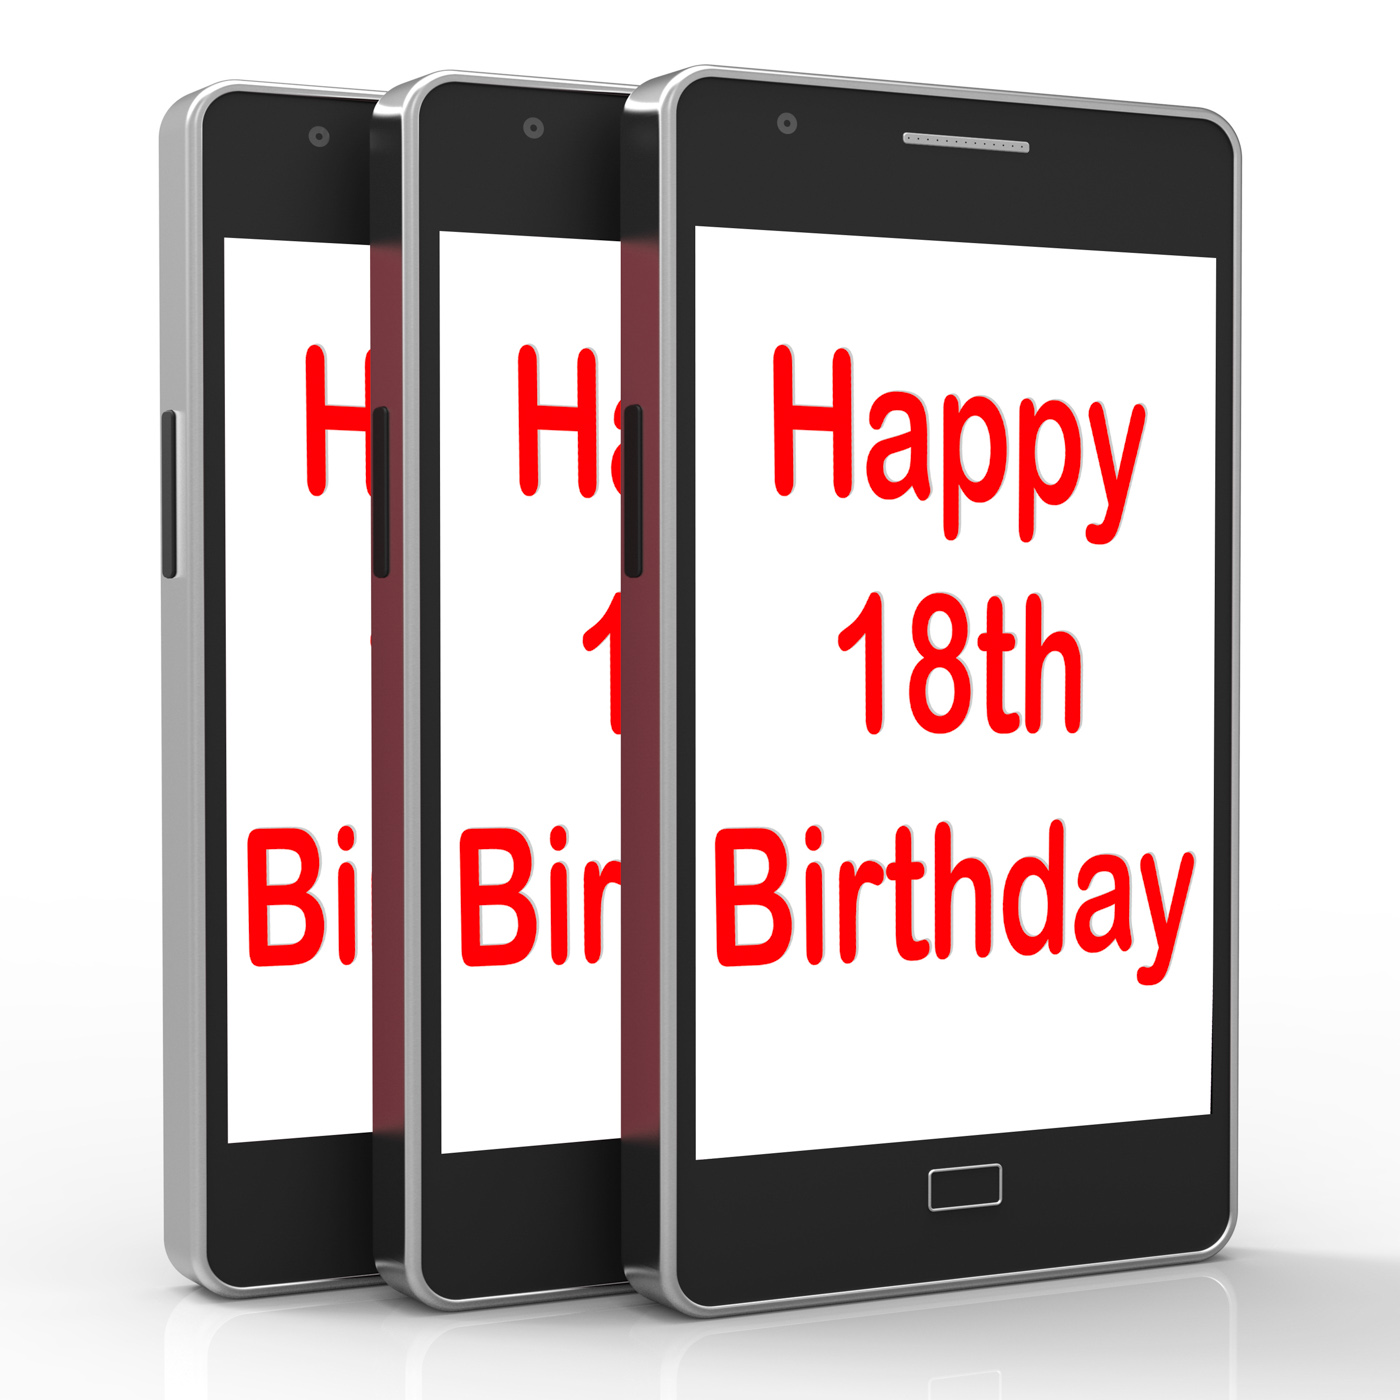 Happy 18th birthday on phone means eighteen photo